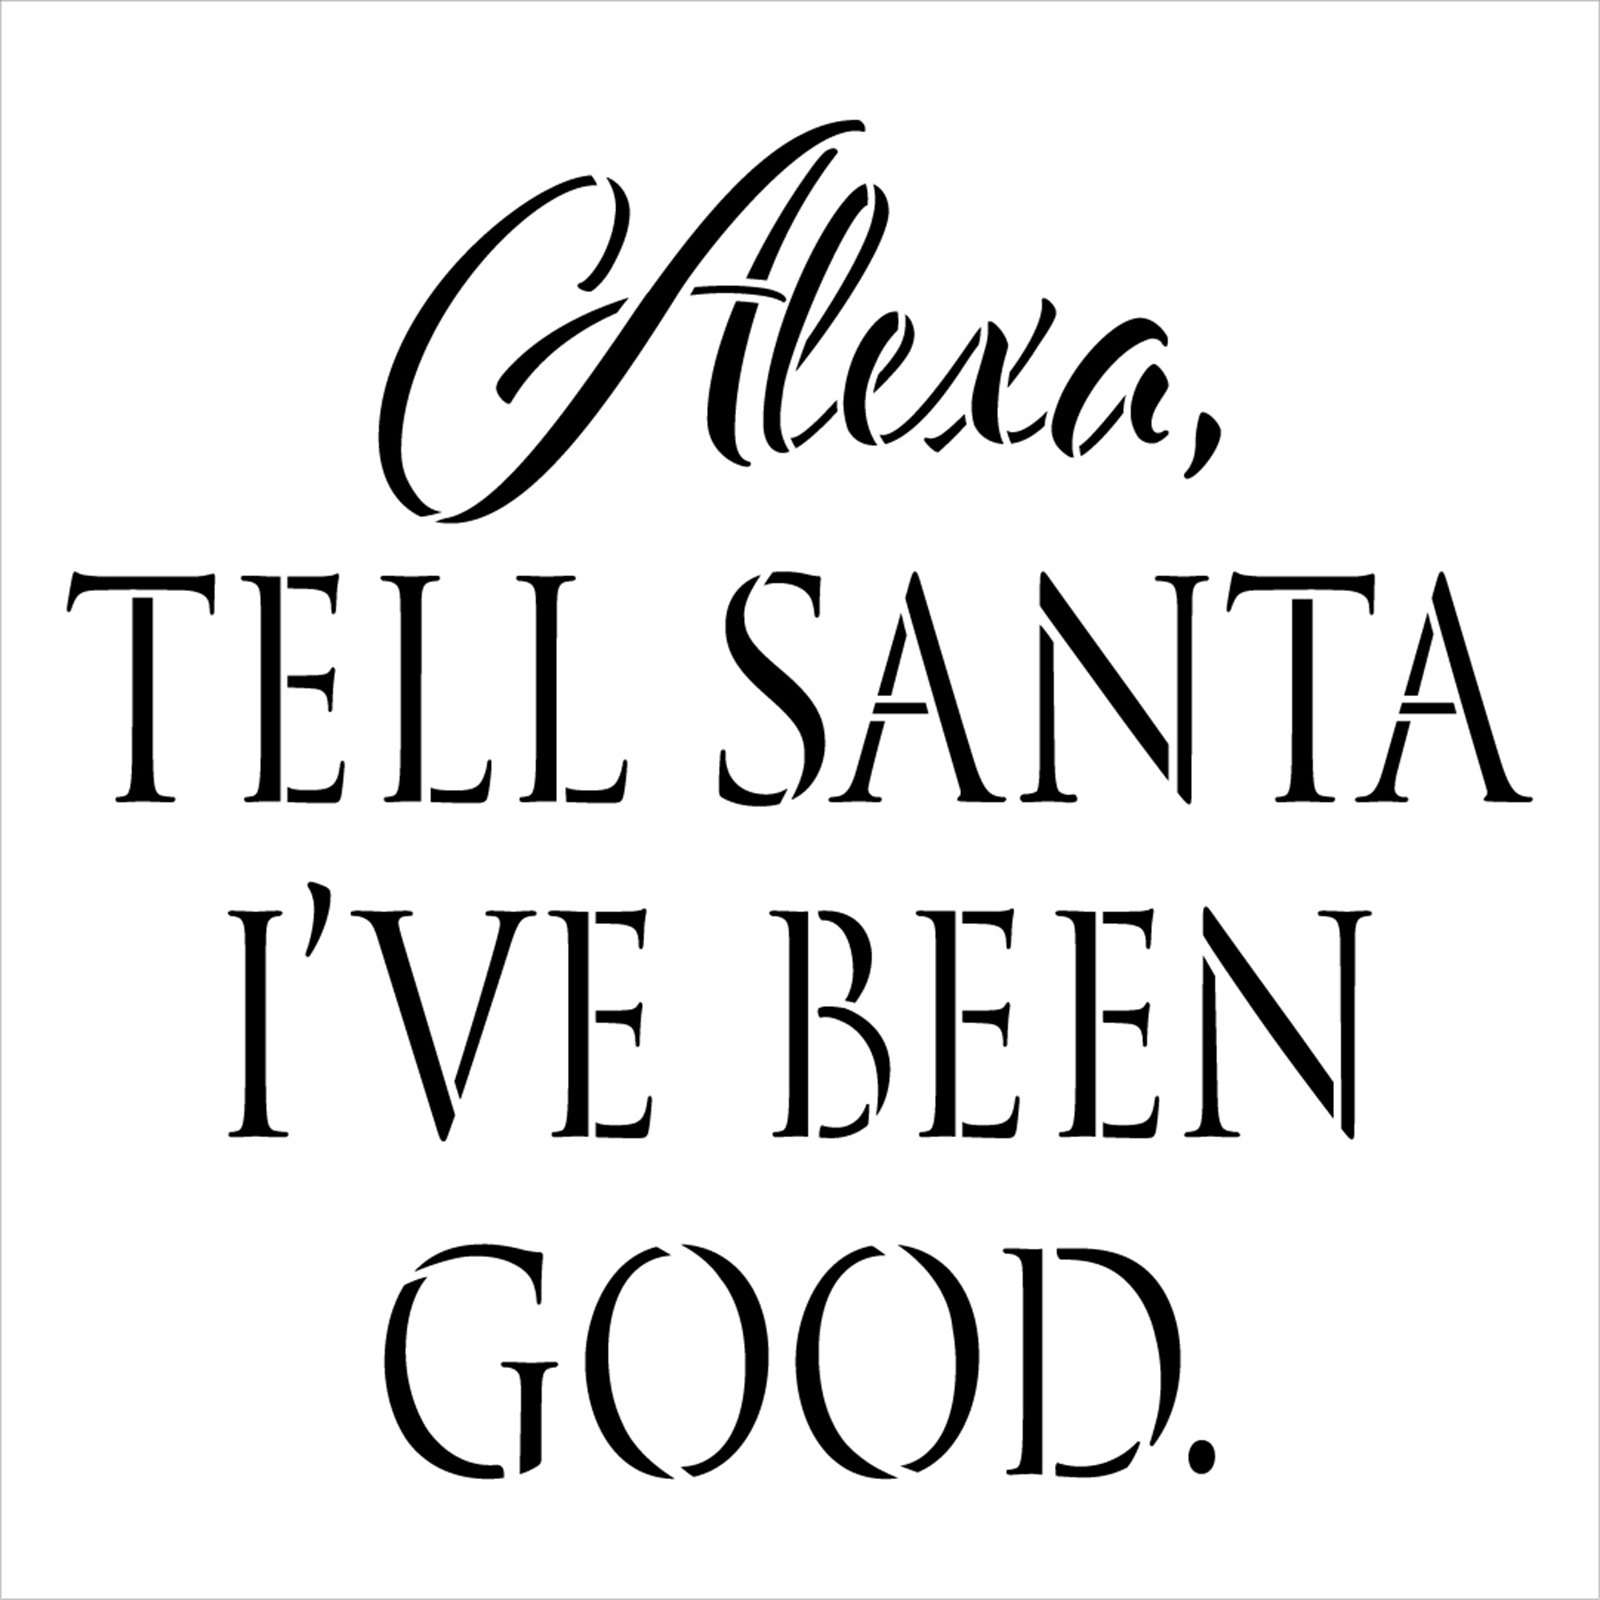 Alexa Tell Santa I've Been Good Stencil by StudioR12 | Craft DIY Christmas Holiday Home Decor | Paint Wood Sign Reusable Mylar Template | Select Size